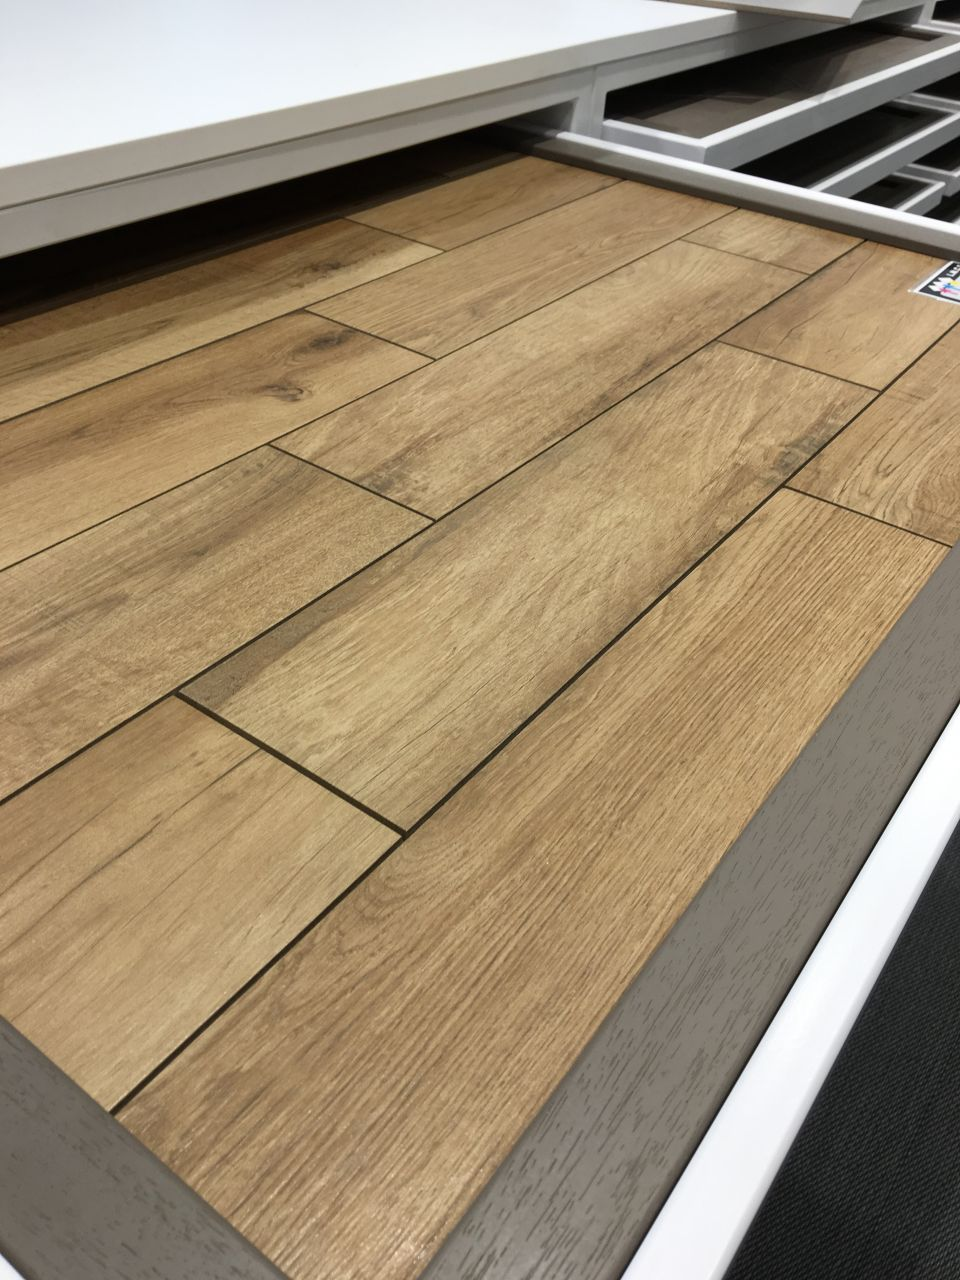 Choix couleur de joint carrelage imitation parquet 11 for Joints de carrelage